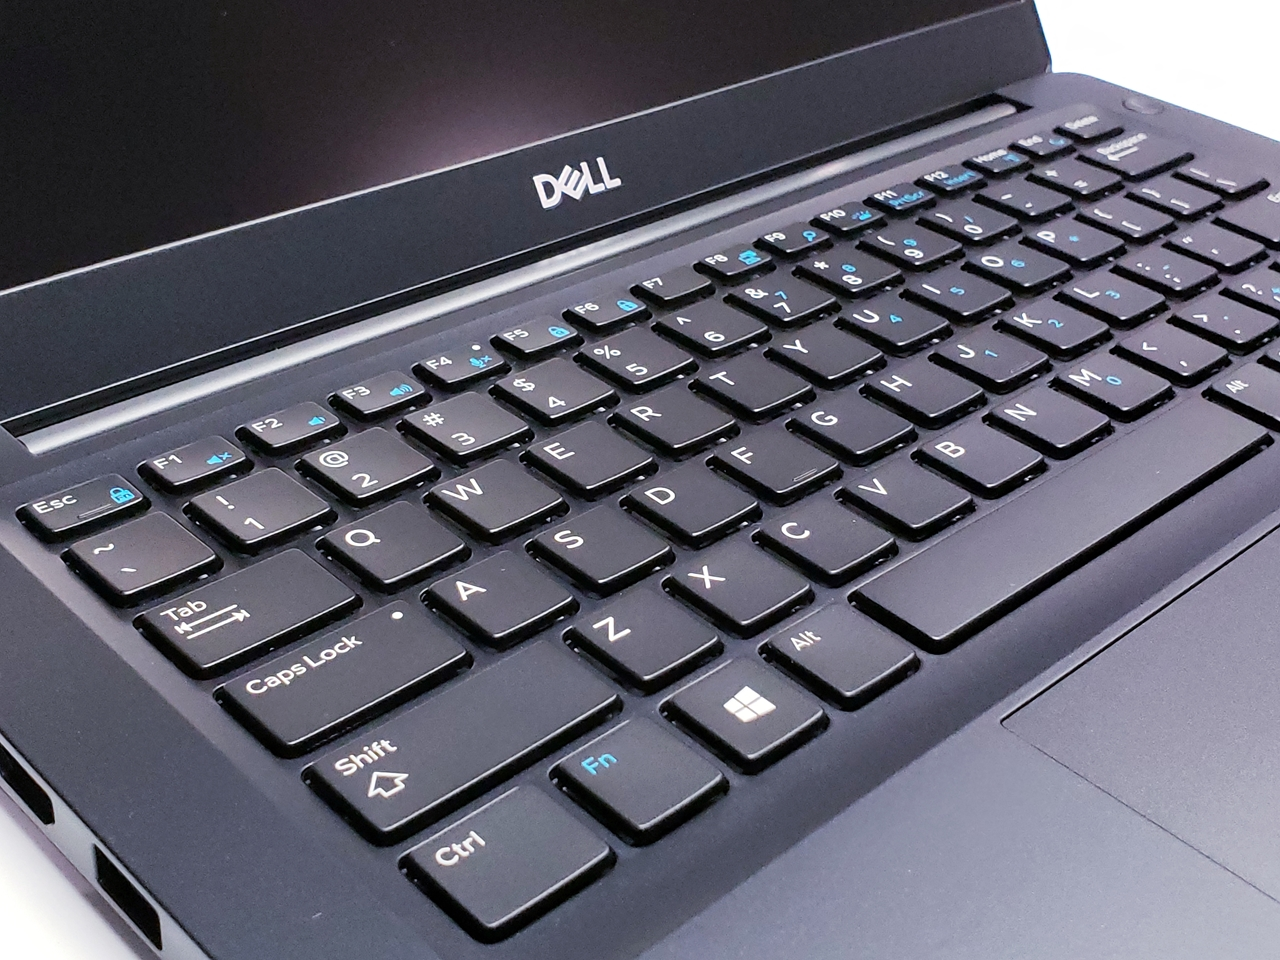 Dell Latitude 7390 Ultrabook Review - Page 2 of 3 - FunkyKit